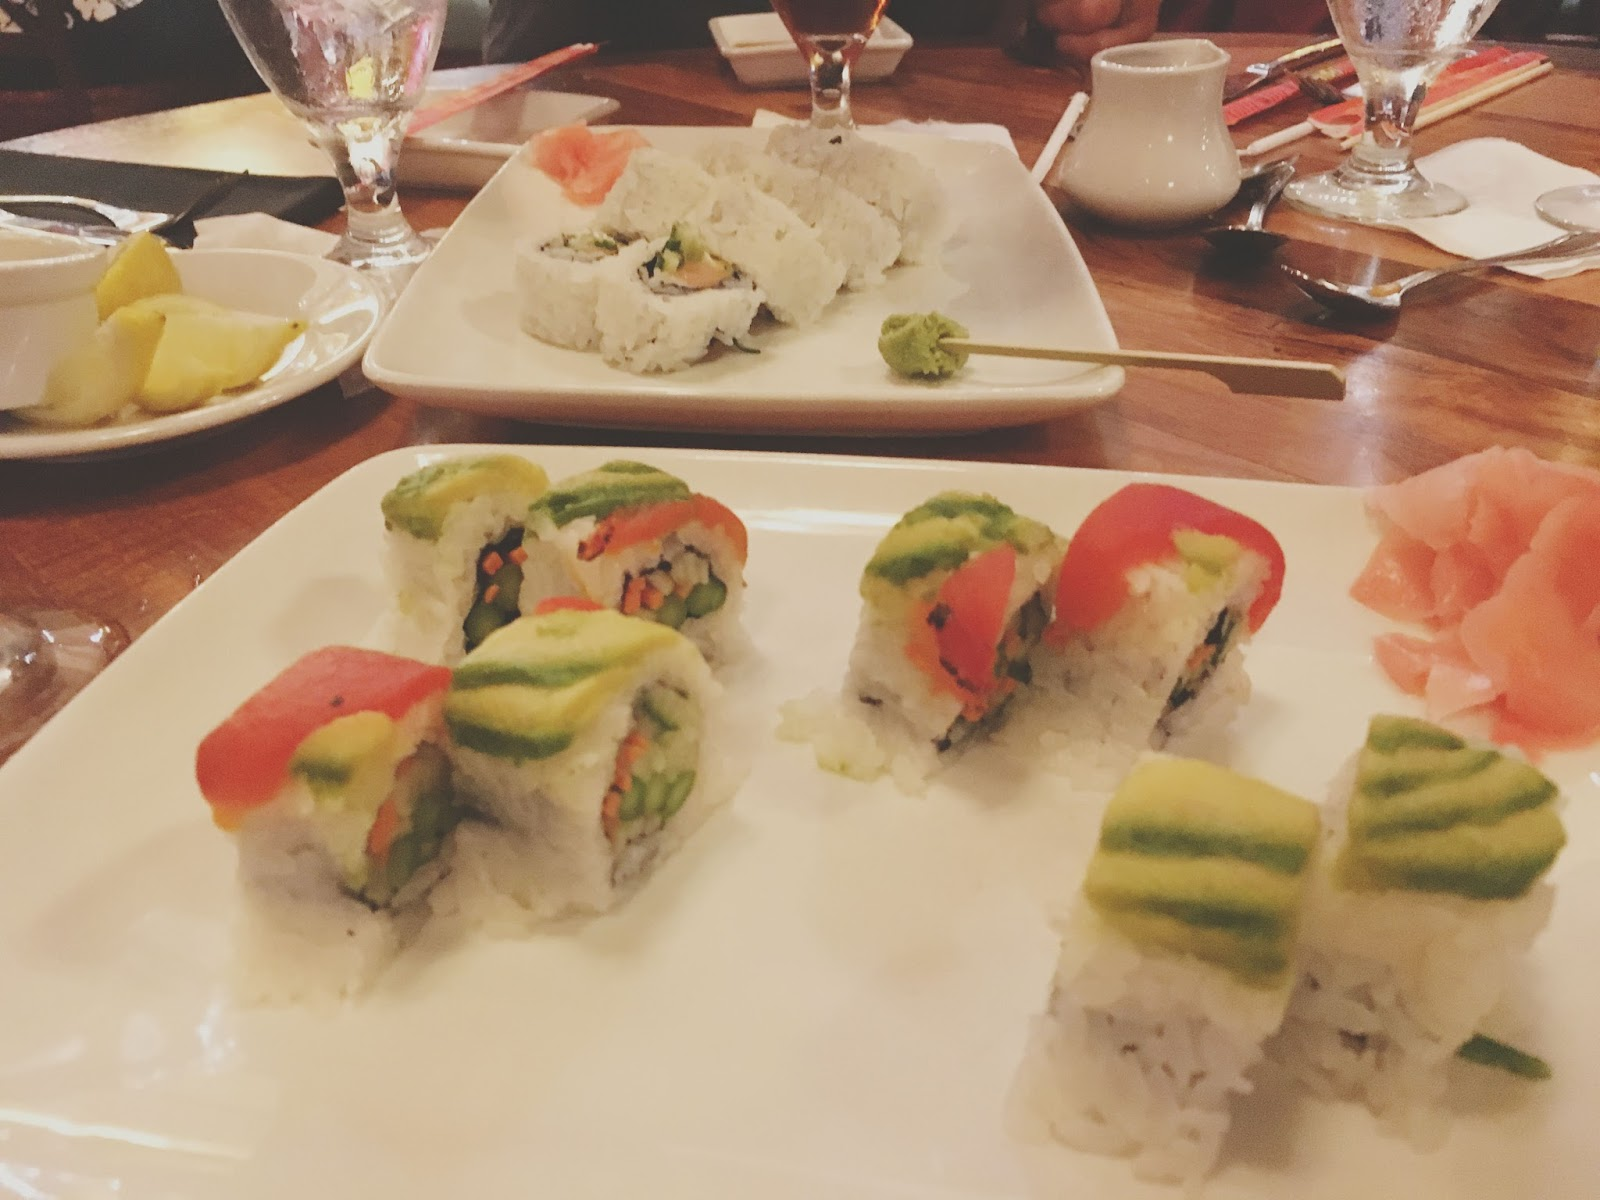 sushi at Kona Cafe in Disney World, Florida